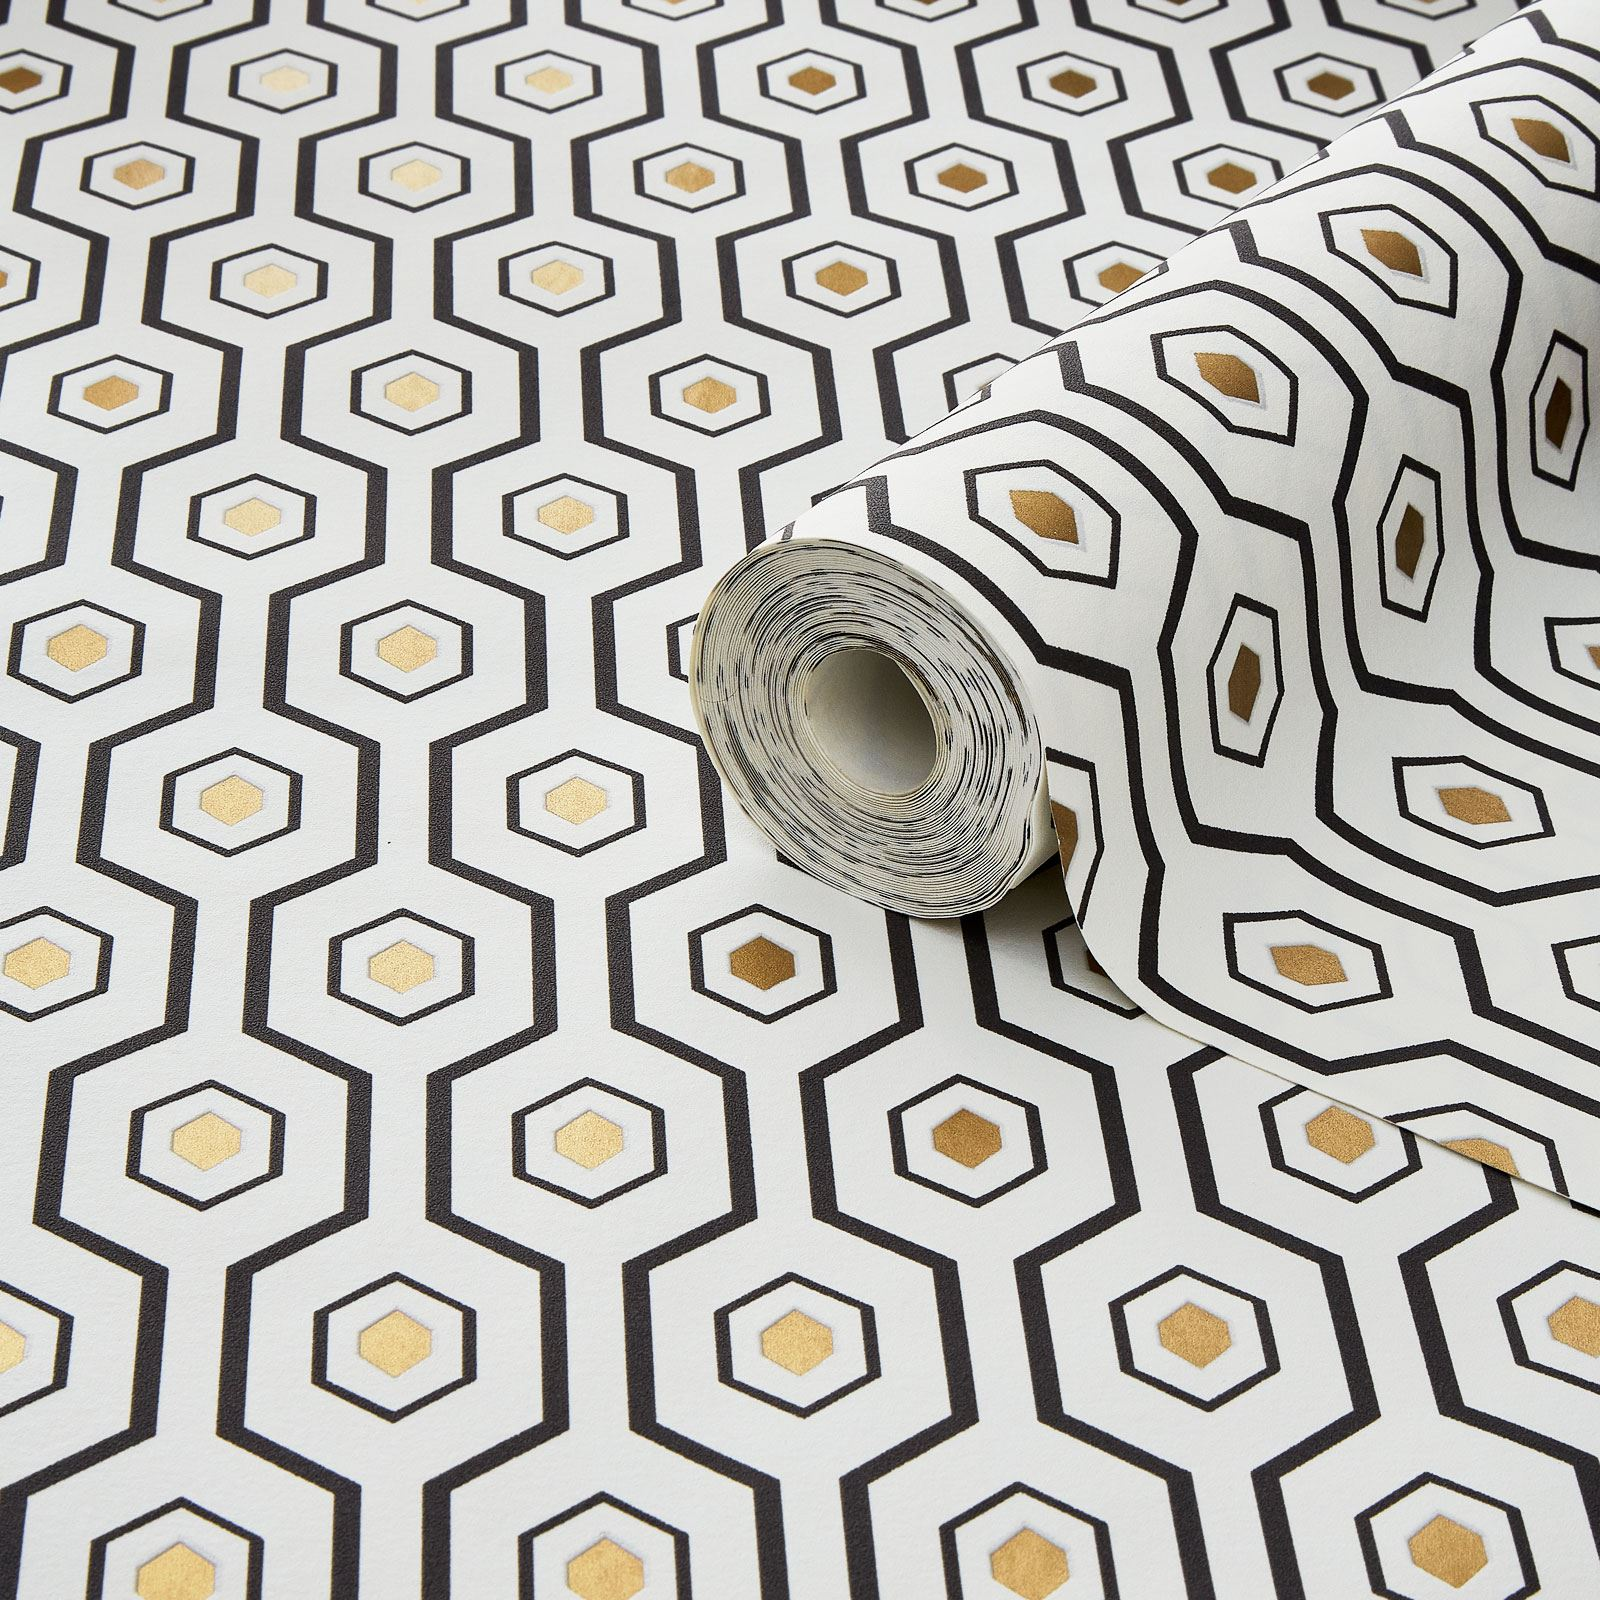 GOLD GRANDECO A34201 METALLIC GOLD ELEMENTS ASHTON GEOMETRIC WALLPAPER TEAL